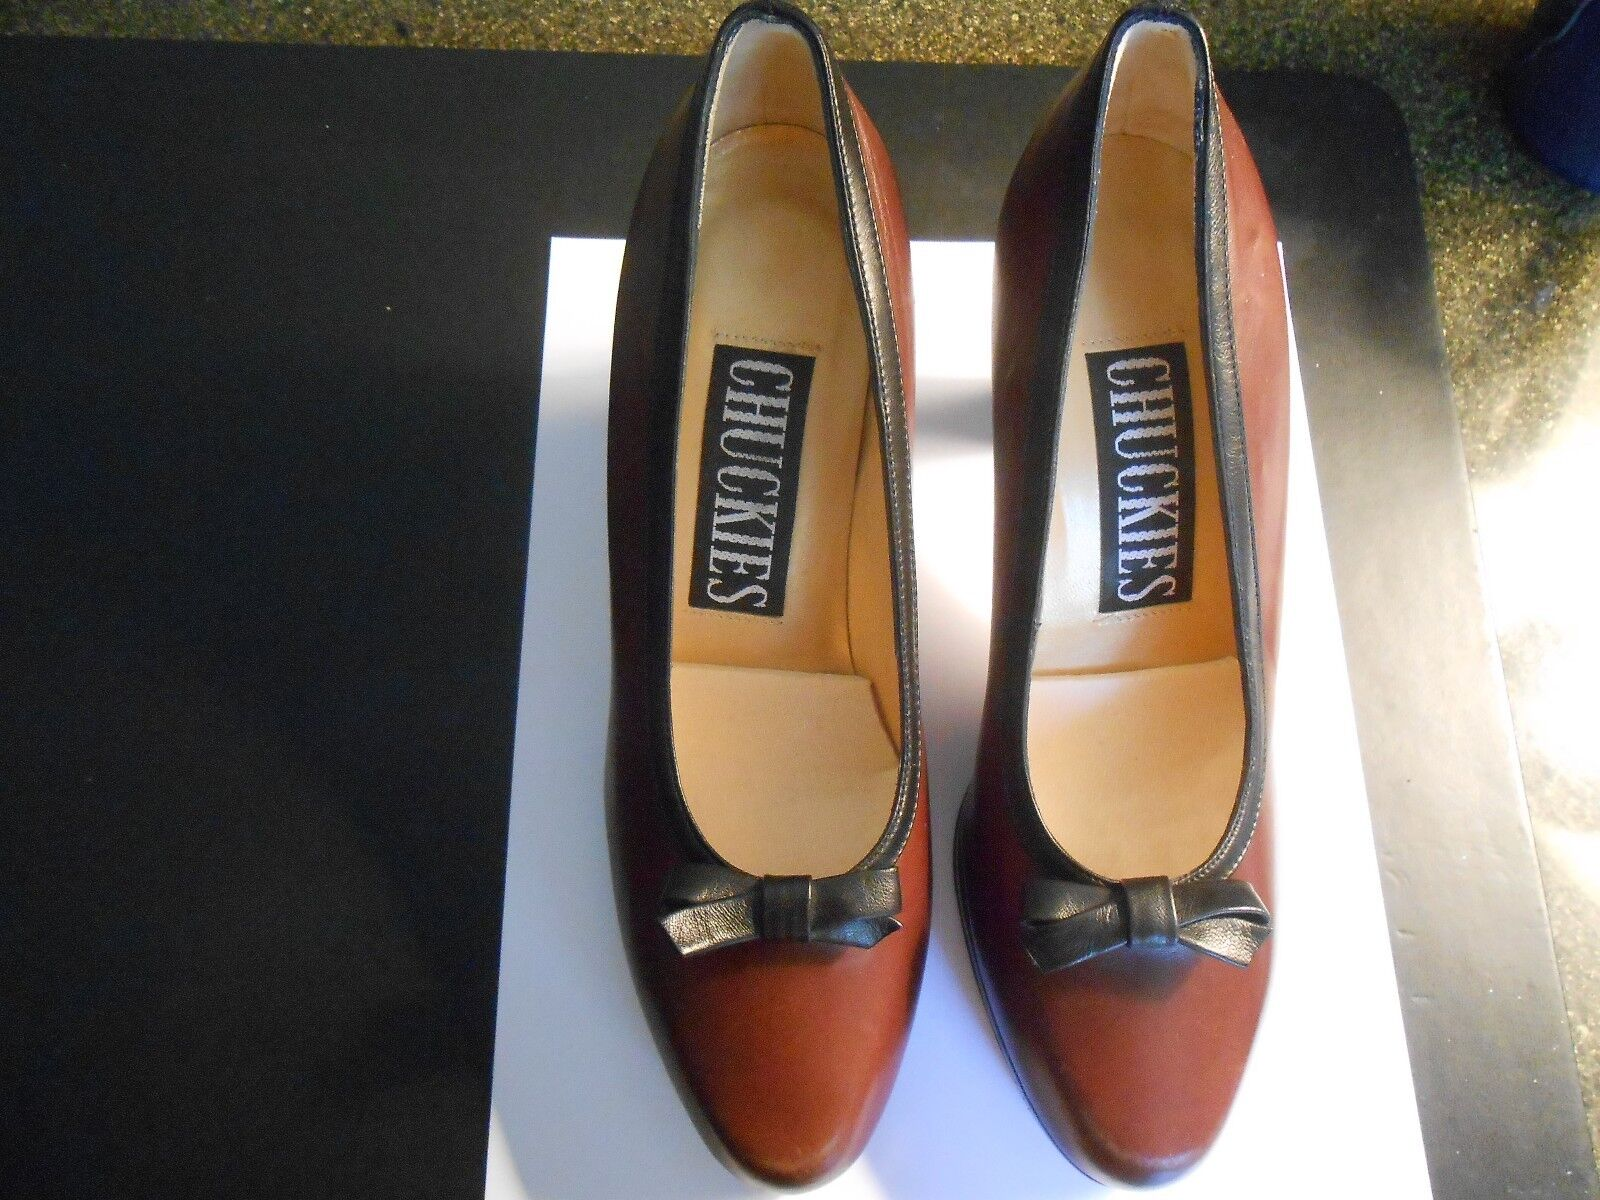 CHUCKIES--CORDOVAN BLACK TRIM PUMPS--MADE IN ITALY--36 1 2 (WIDTH 3 )